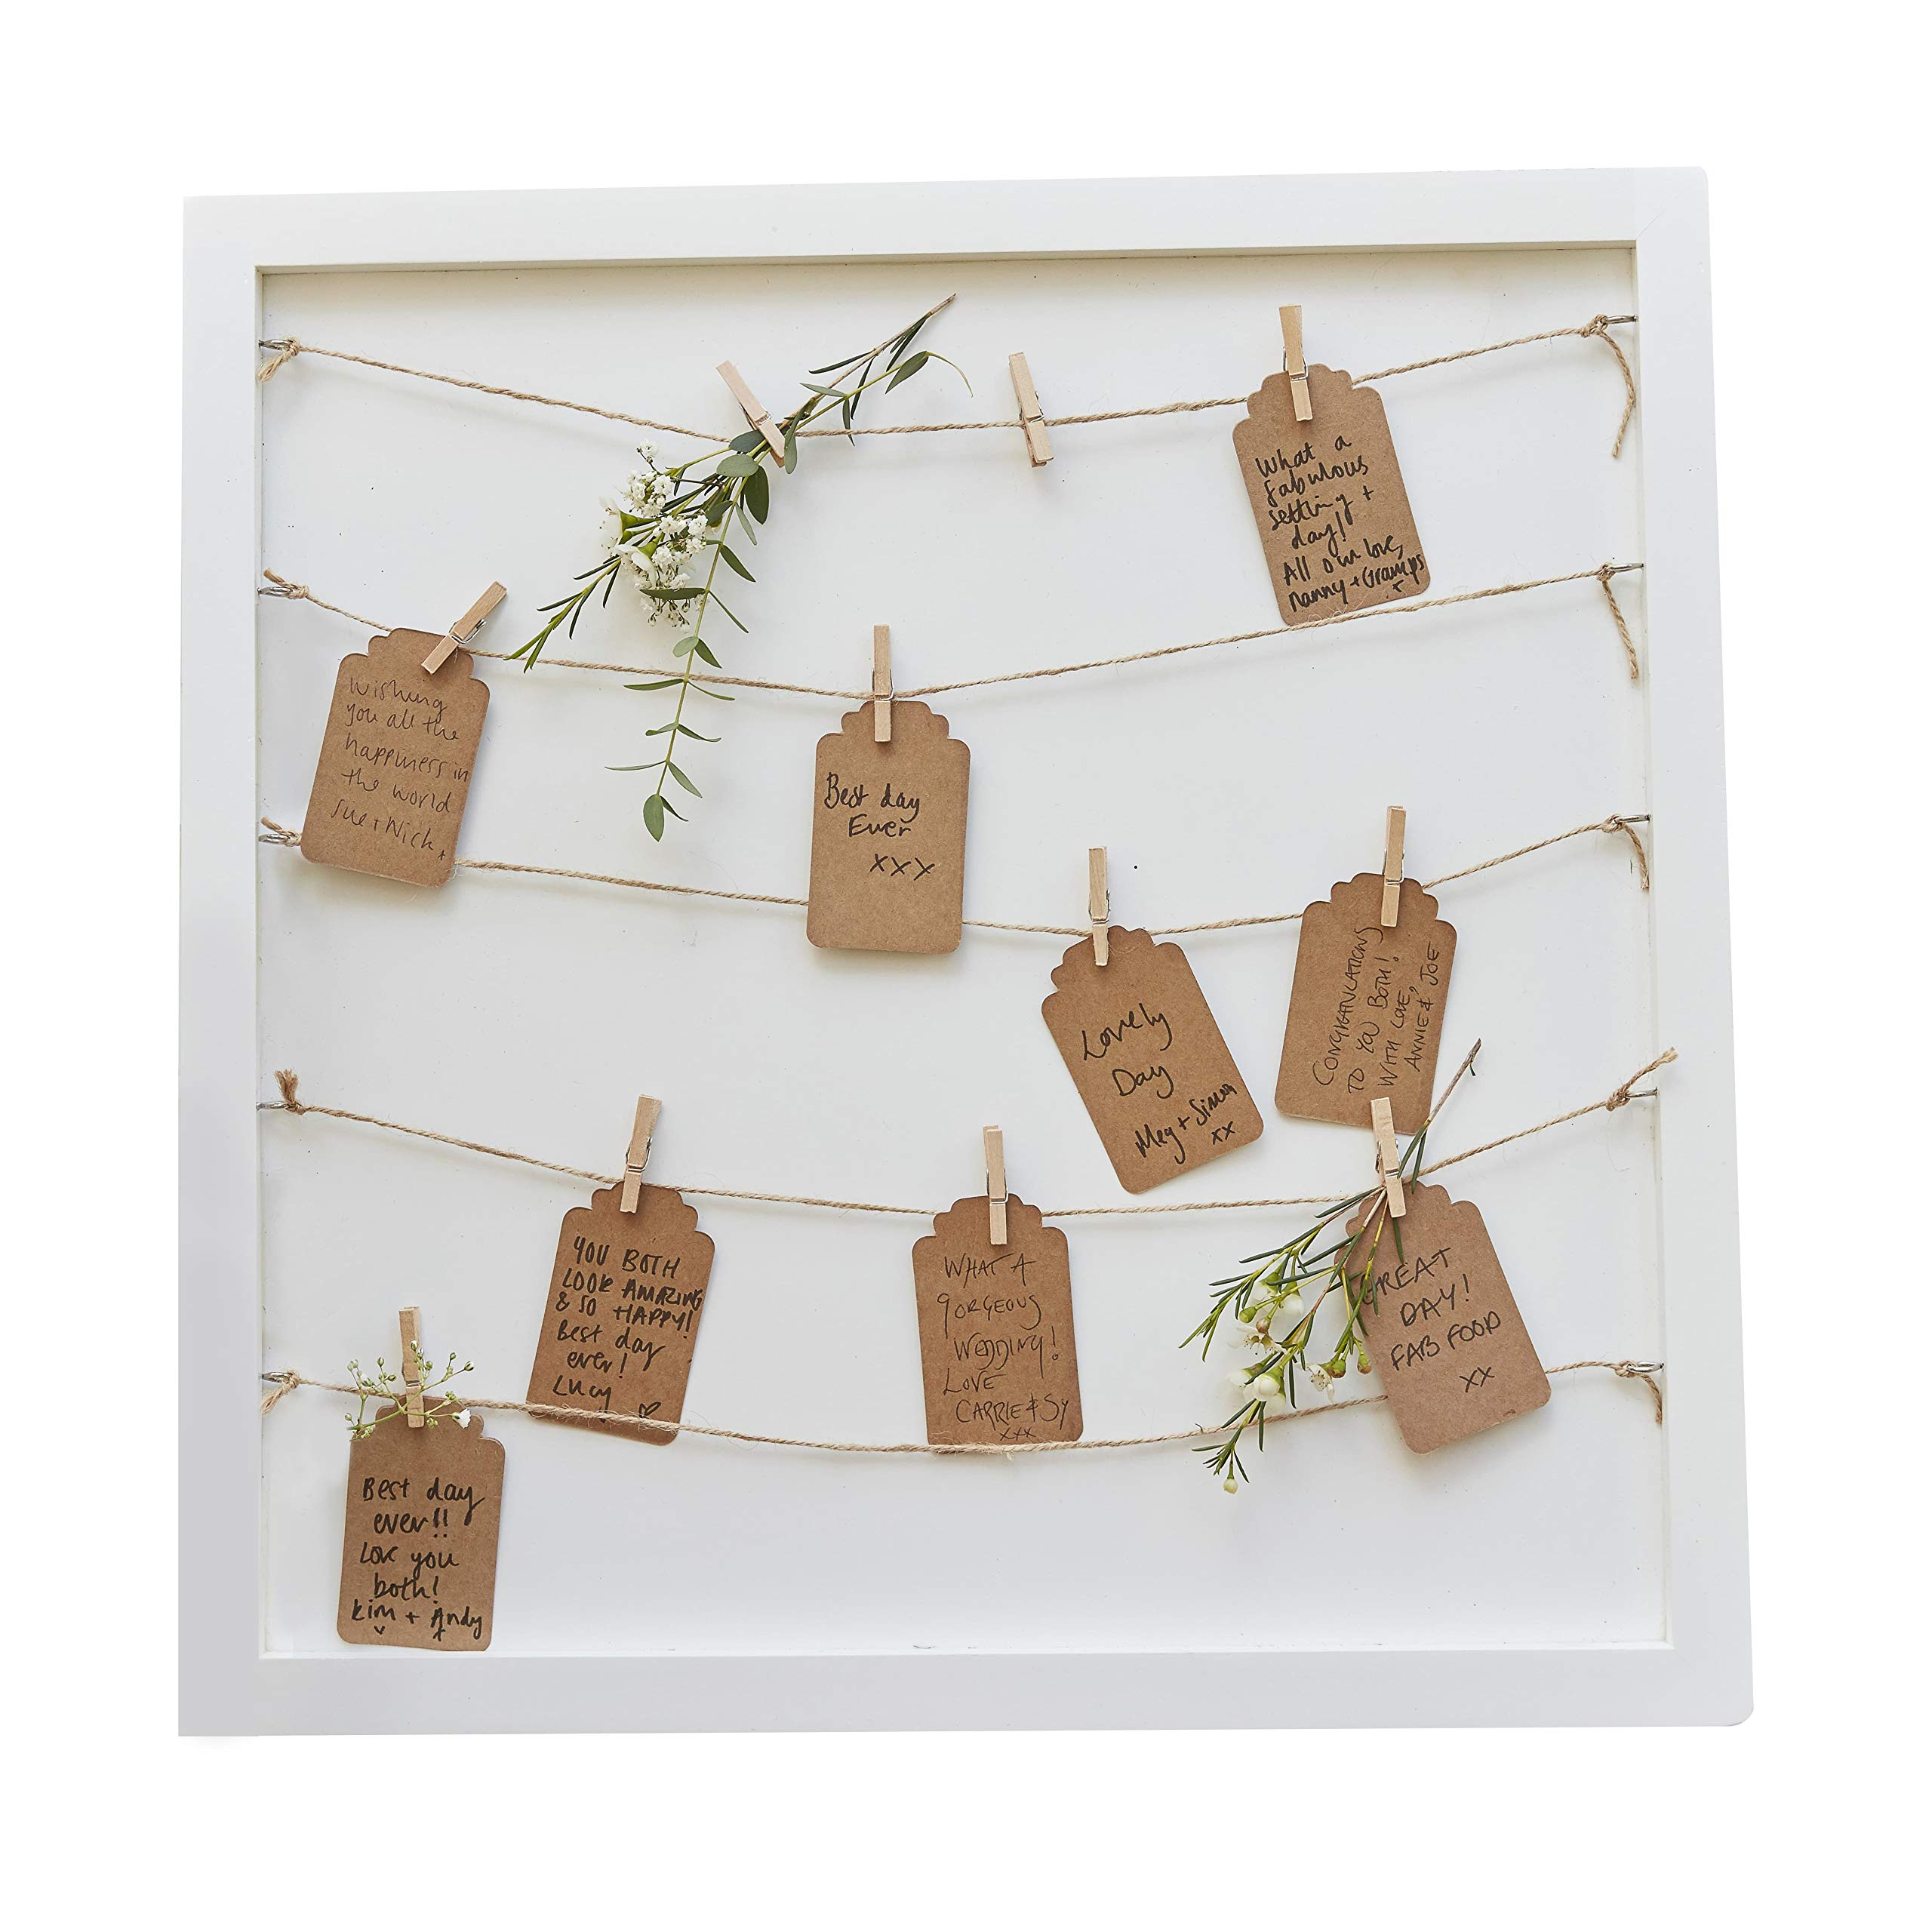 Ginger Ray Wooden Frame with Pegs, String & Tags to Hang Notecards & Photos - Alternative Guest Book for Weddings, Baby Shower & Bridal Shower Party